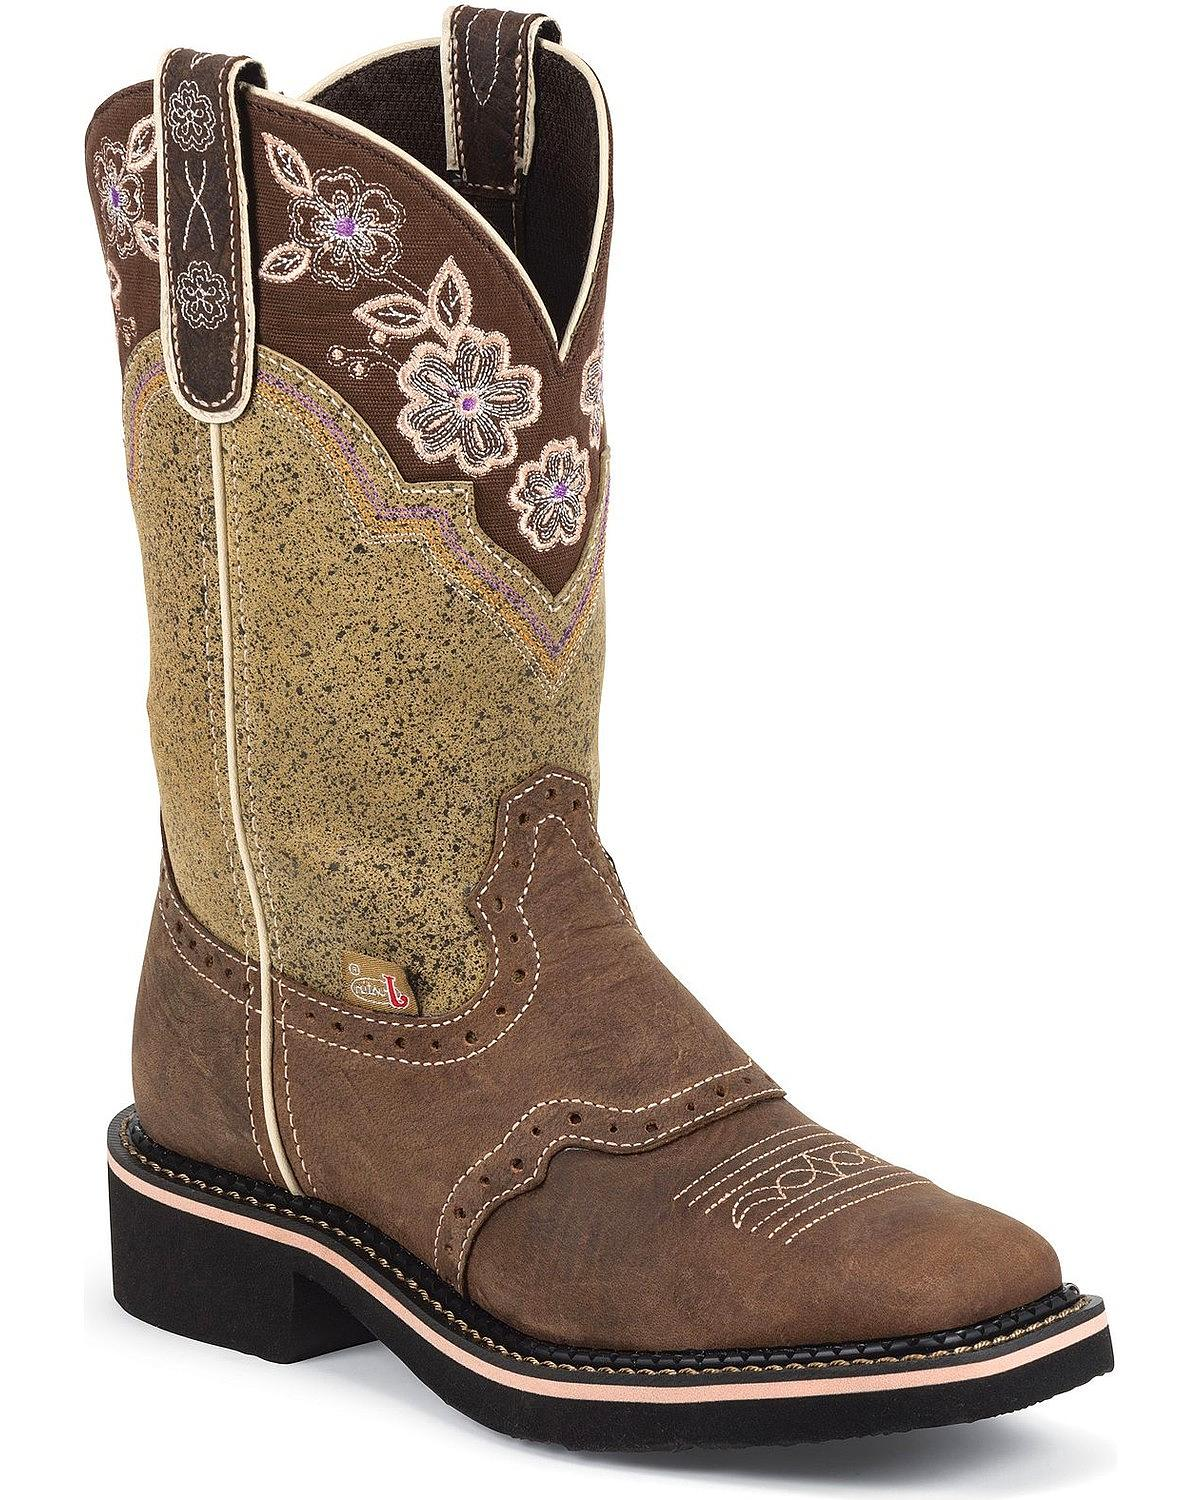 Original Book Of Justin Boots Womens Square Toe Gypsy In Singapore ...